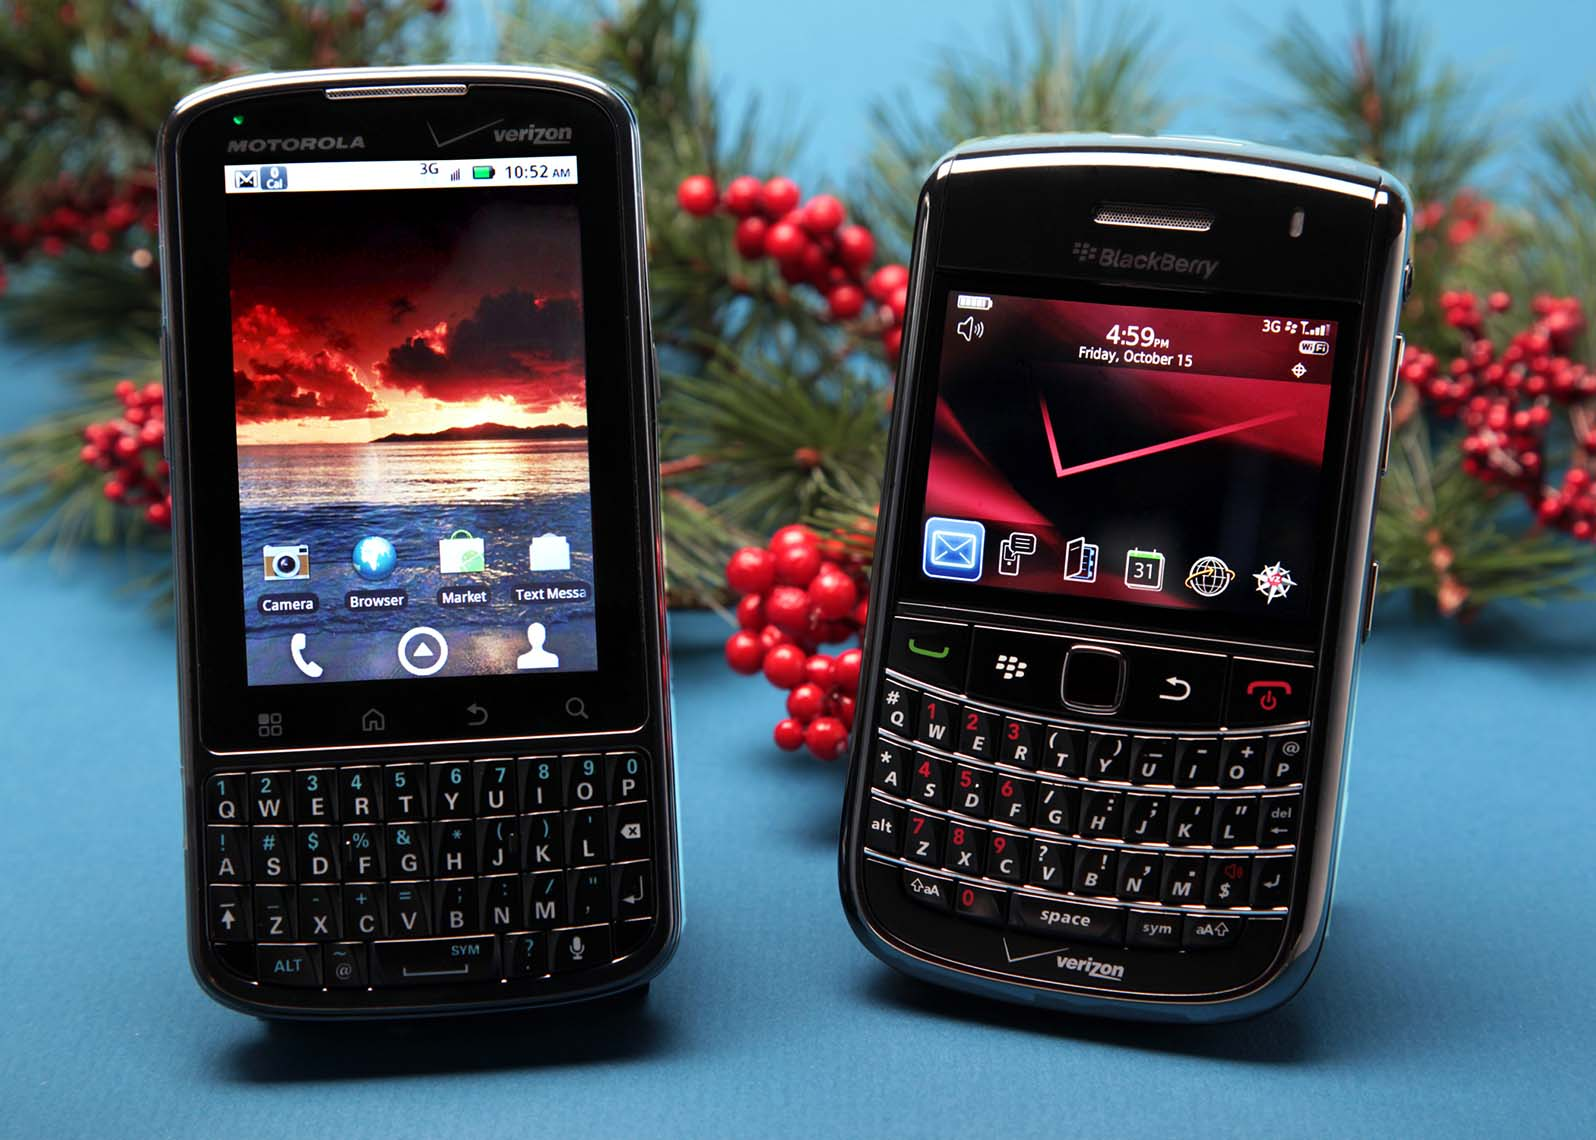 Motorola Blackberry Product Photo for Holiday Ad